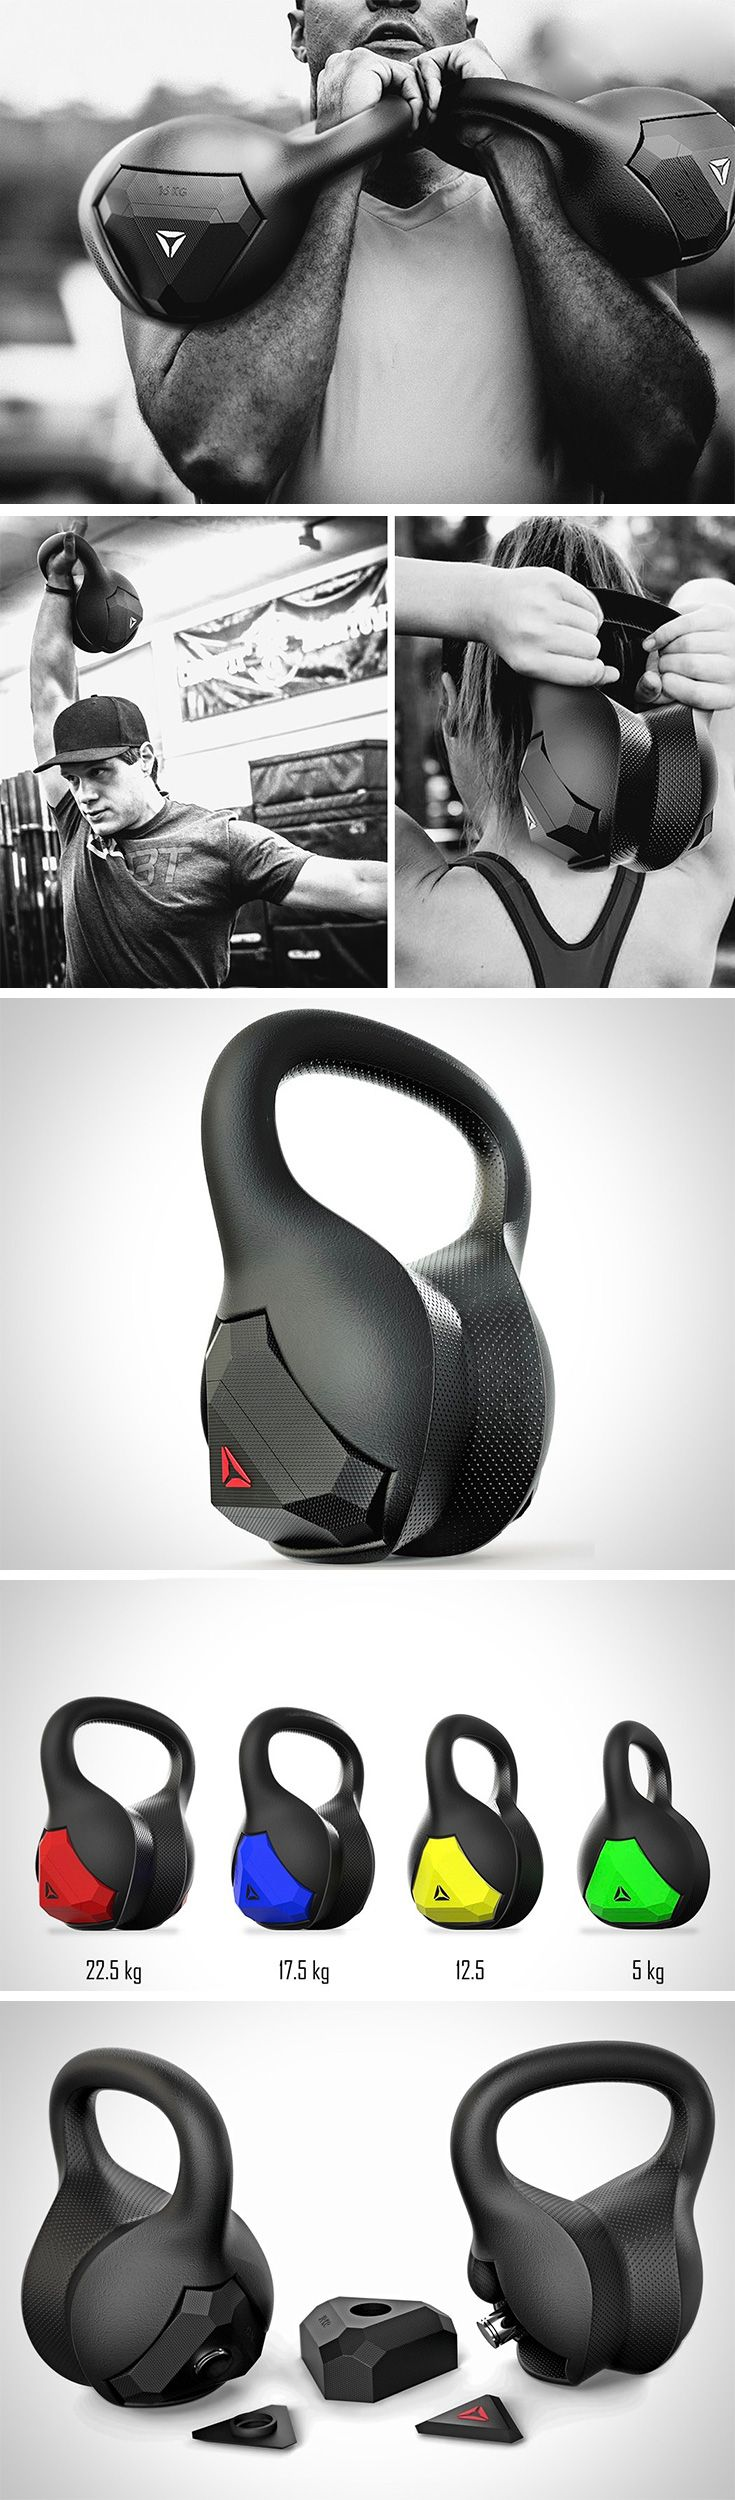 Whether you're new to kettlebell training or have a seasoned hand, injuries can strike at any time and that's in part due to the not-so-comfy design of the standard equipment. Created with this in mind, this design features a unique, contoured shape that is ergonomically adapted to wrap around the wrist and forearm, providing a much more comfortable kettlebell experience.